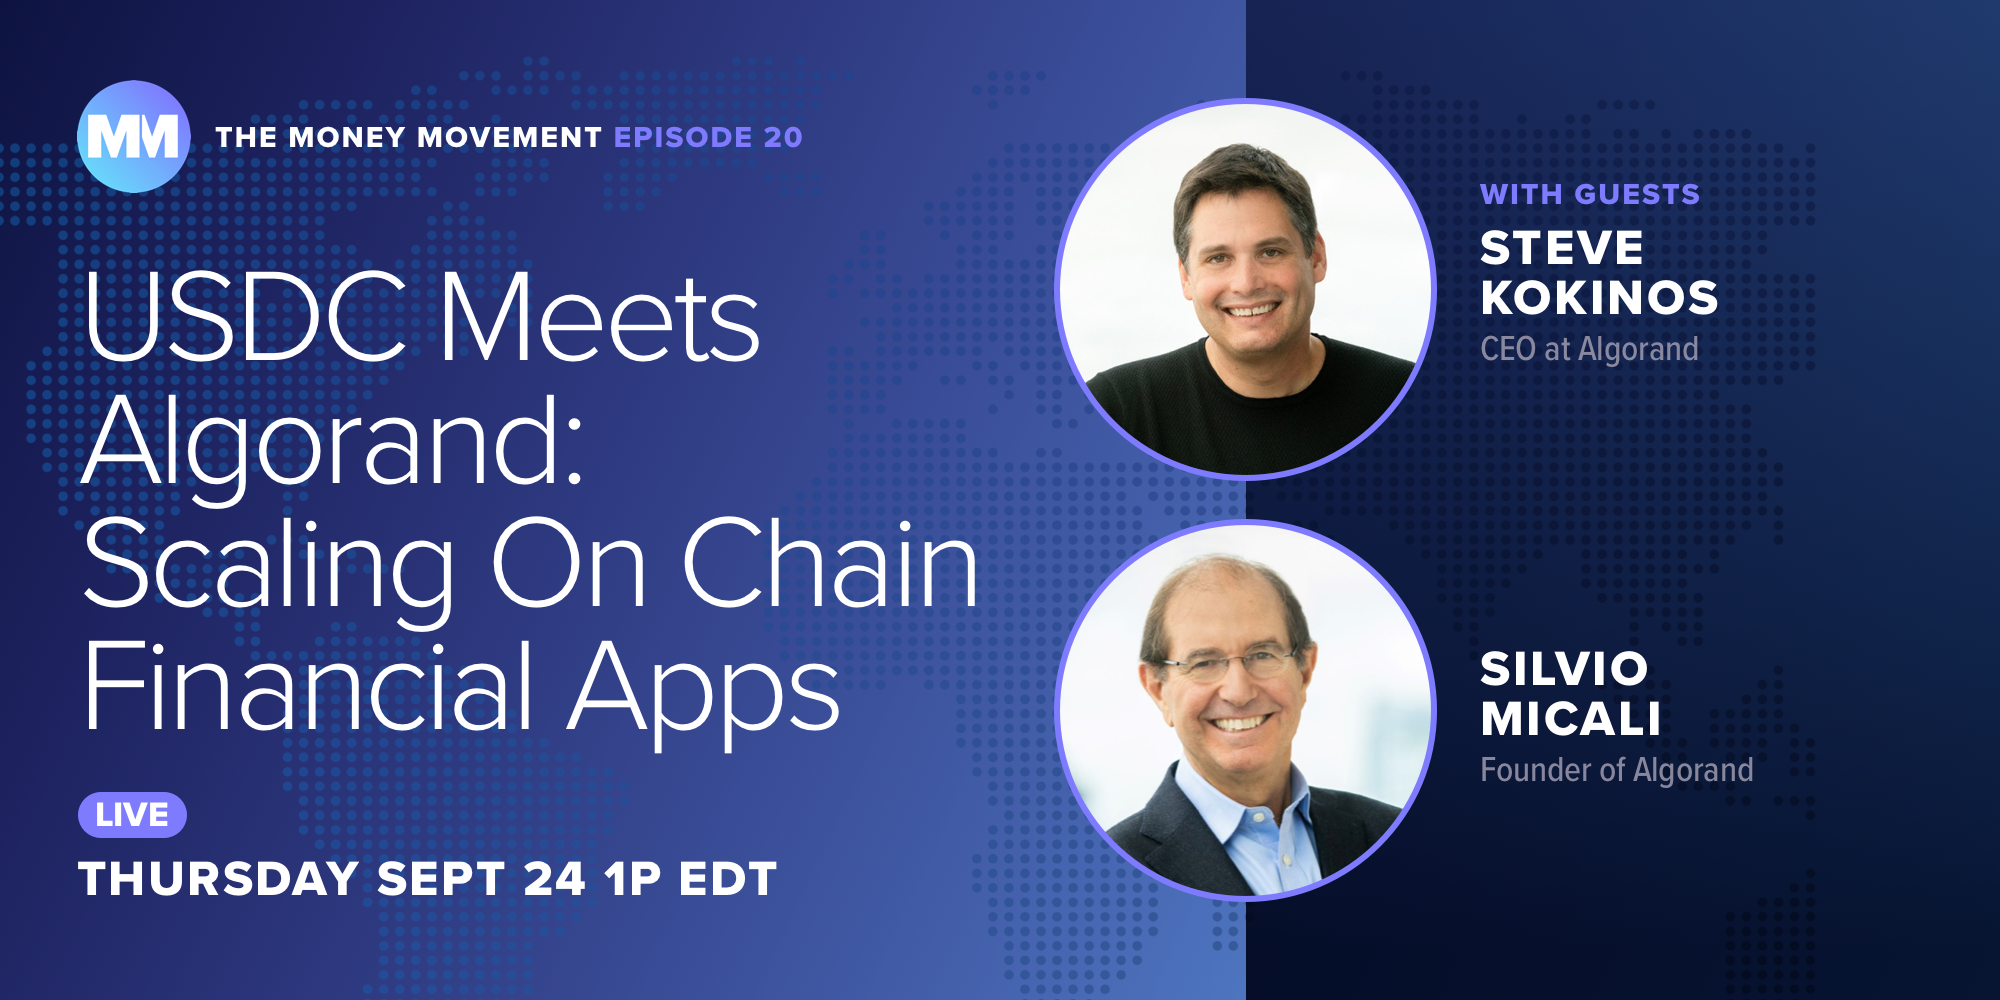 Episode 20: USDC Meets Algorand: Scaling On Chain Financial Apps